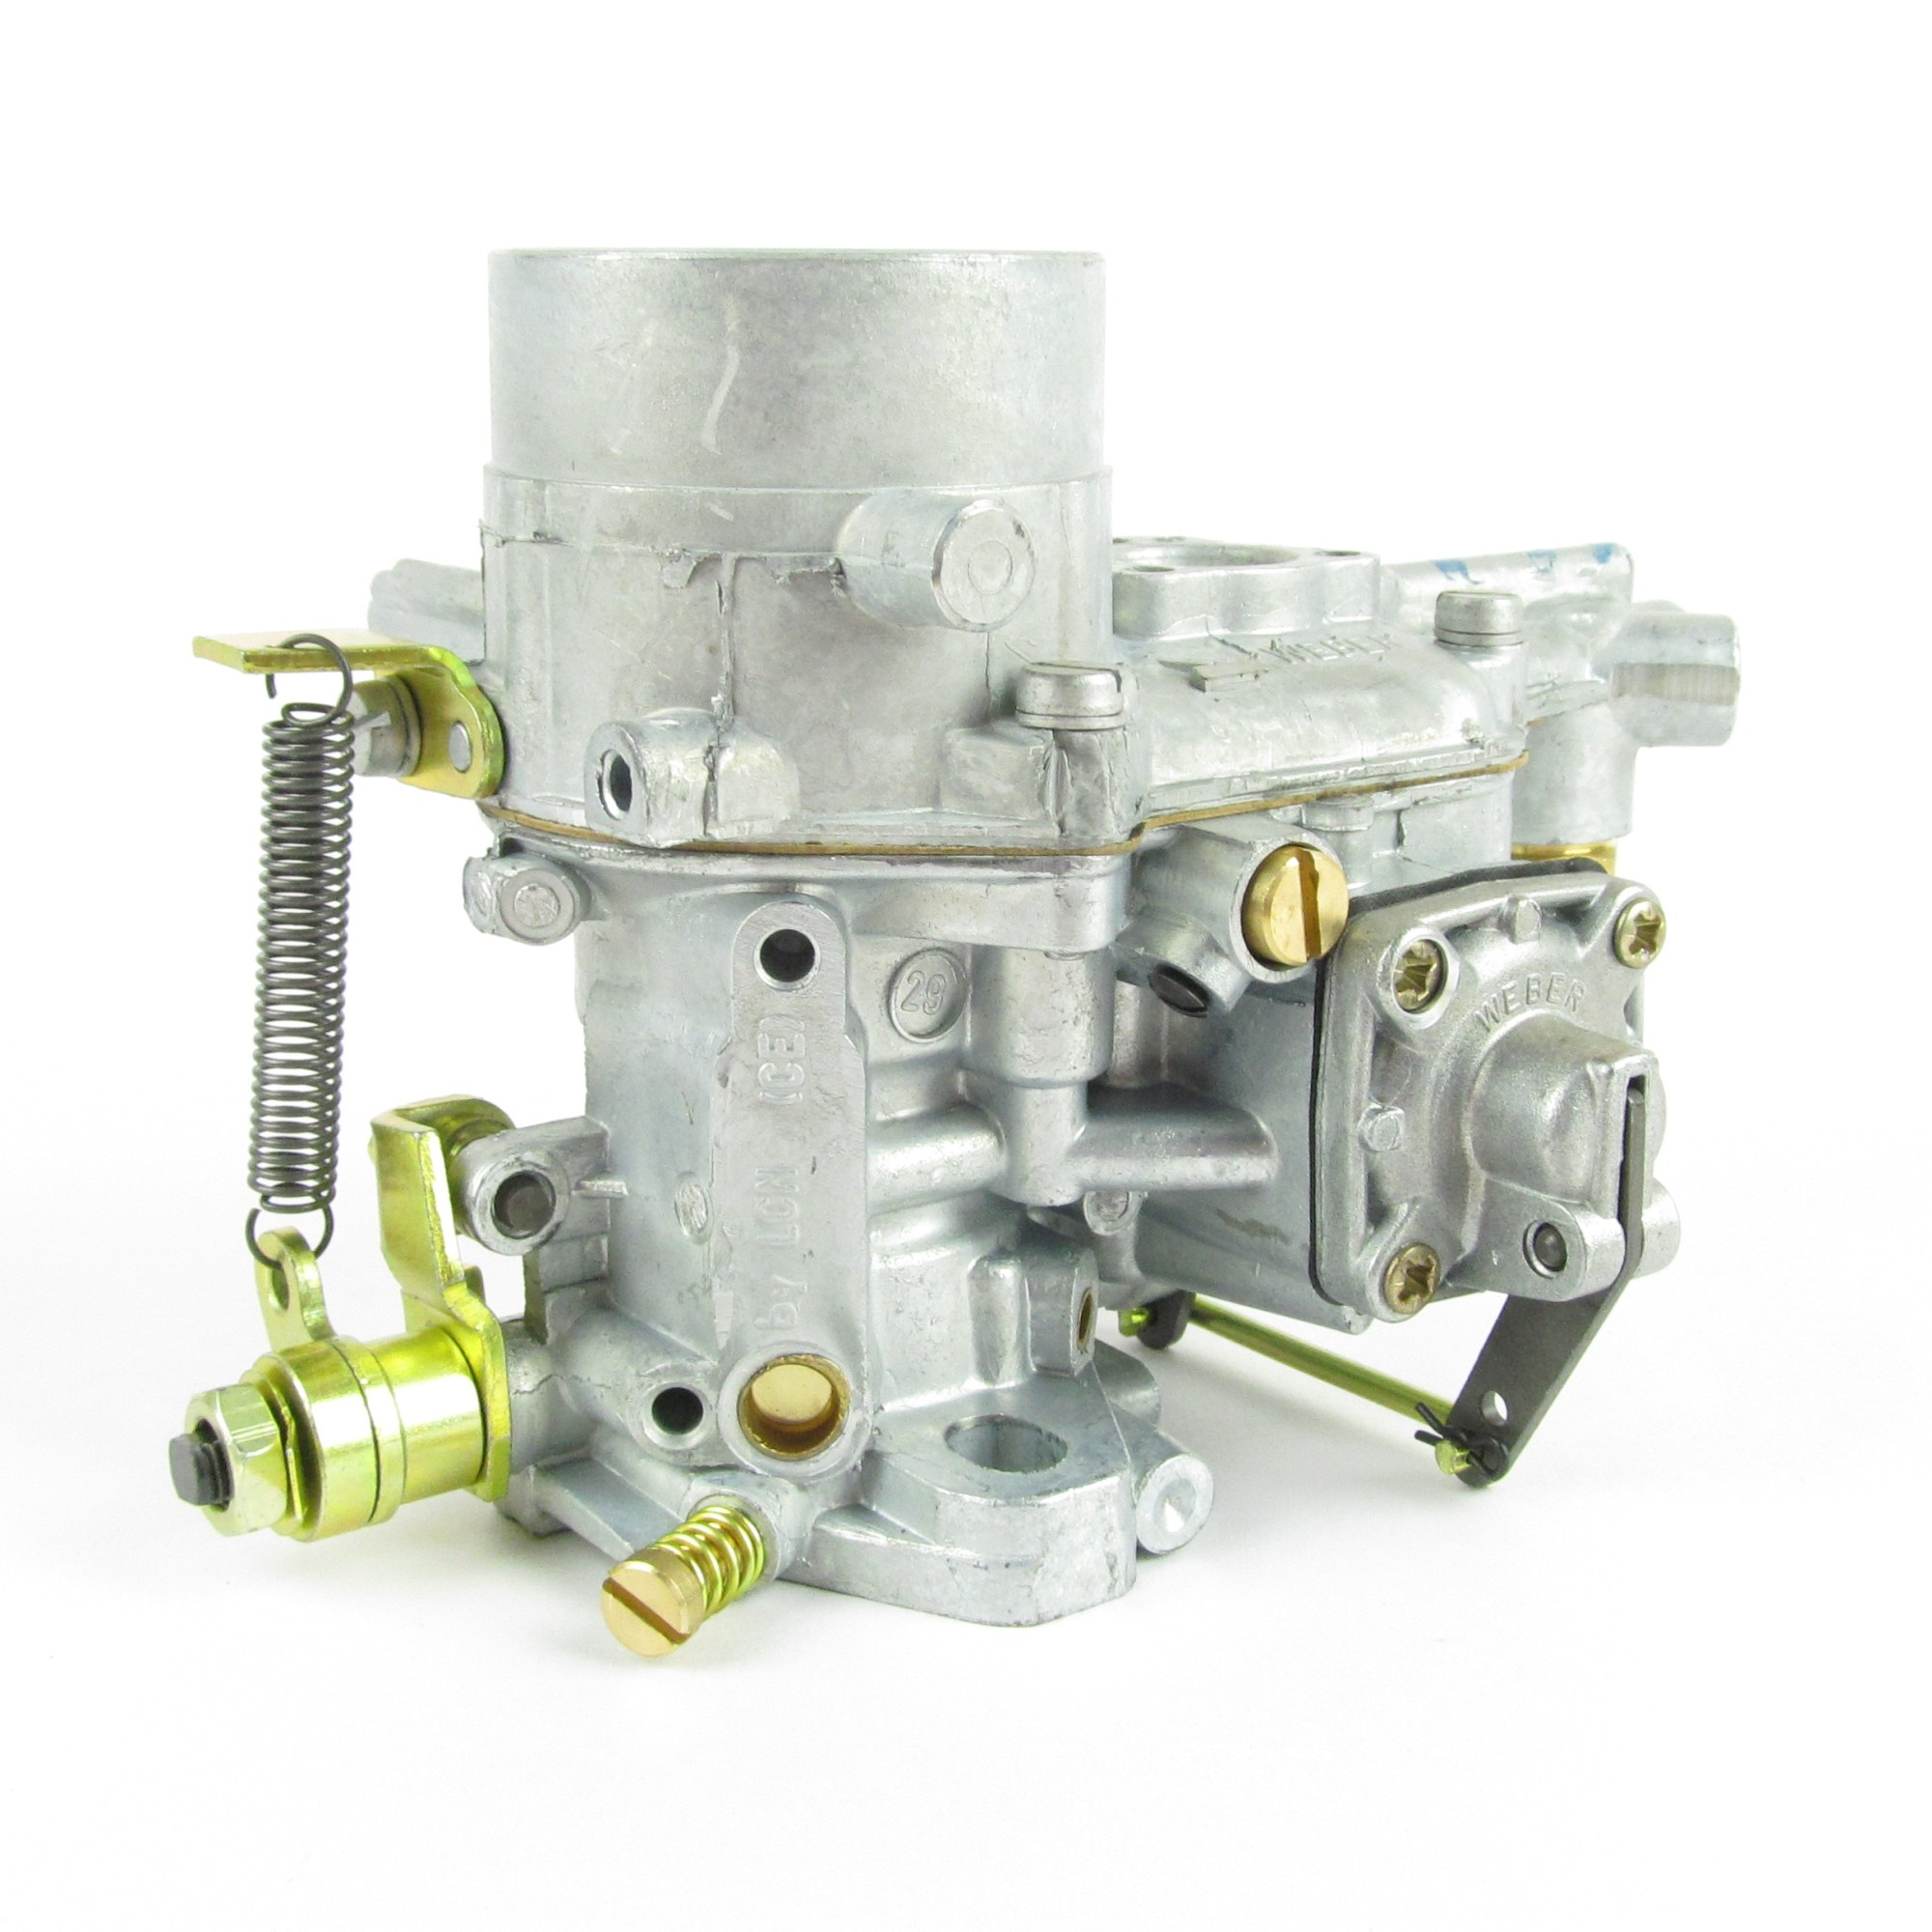 hight resolution of 15290 046 weber ict 34 carburettor without starter eurocarb rh dellorto co uk vw weber carb adjustment vw weber carb identification